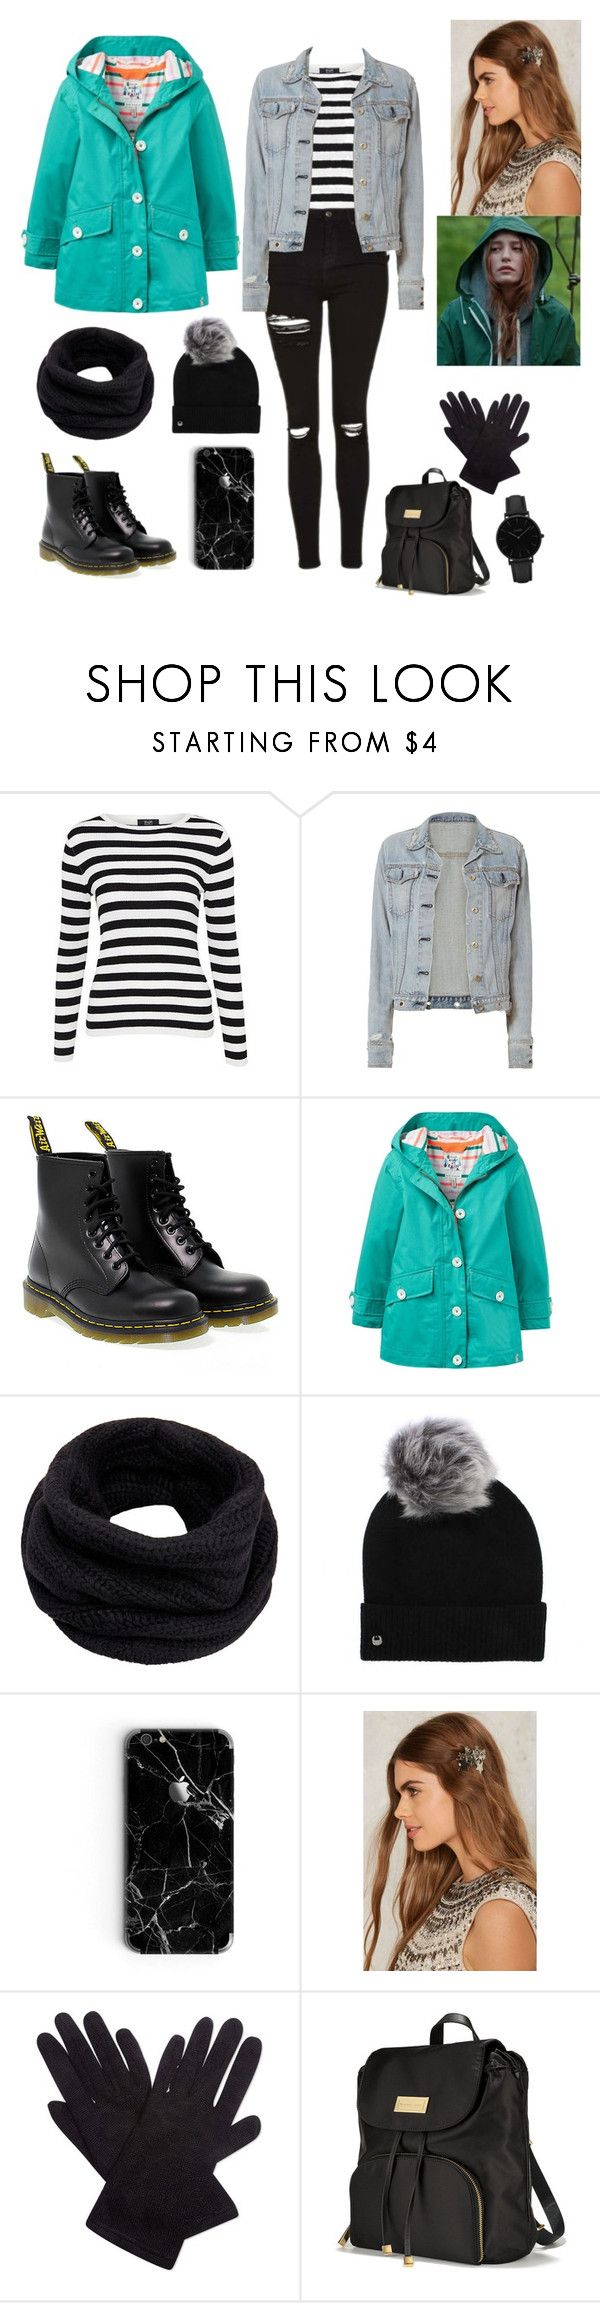 Serenay🌸 by conijs26 on Polyvore featuring moda, Joules, rag & bone, Dr. Martens, Victoria's Secret, CLUSE, Helmut Lang, UGG and Claudie Pierlot